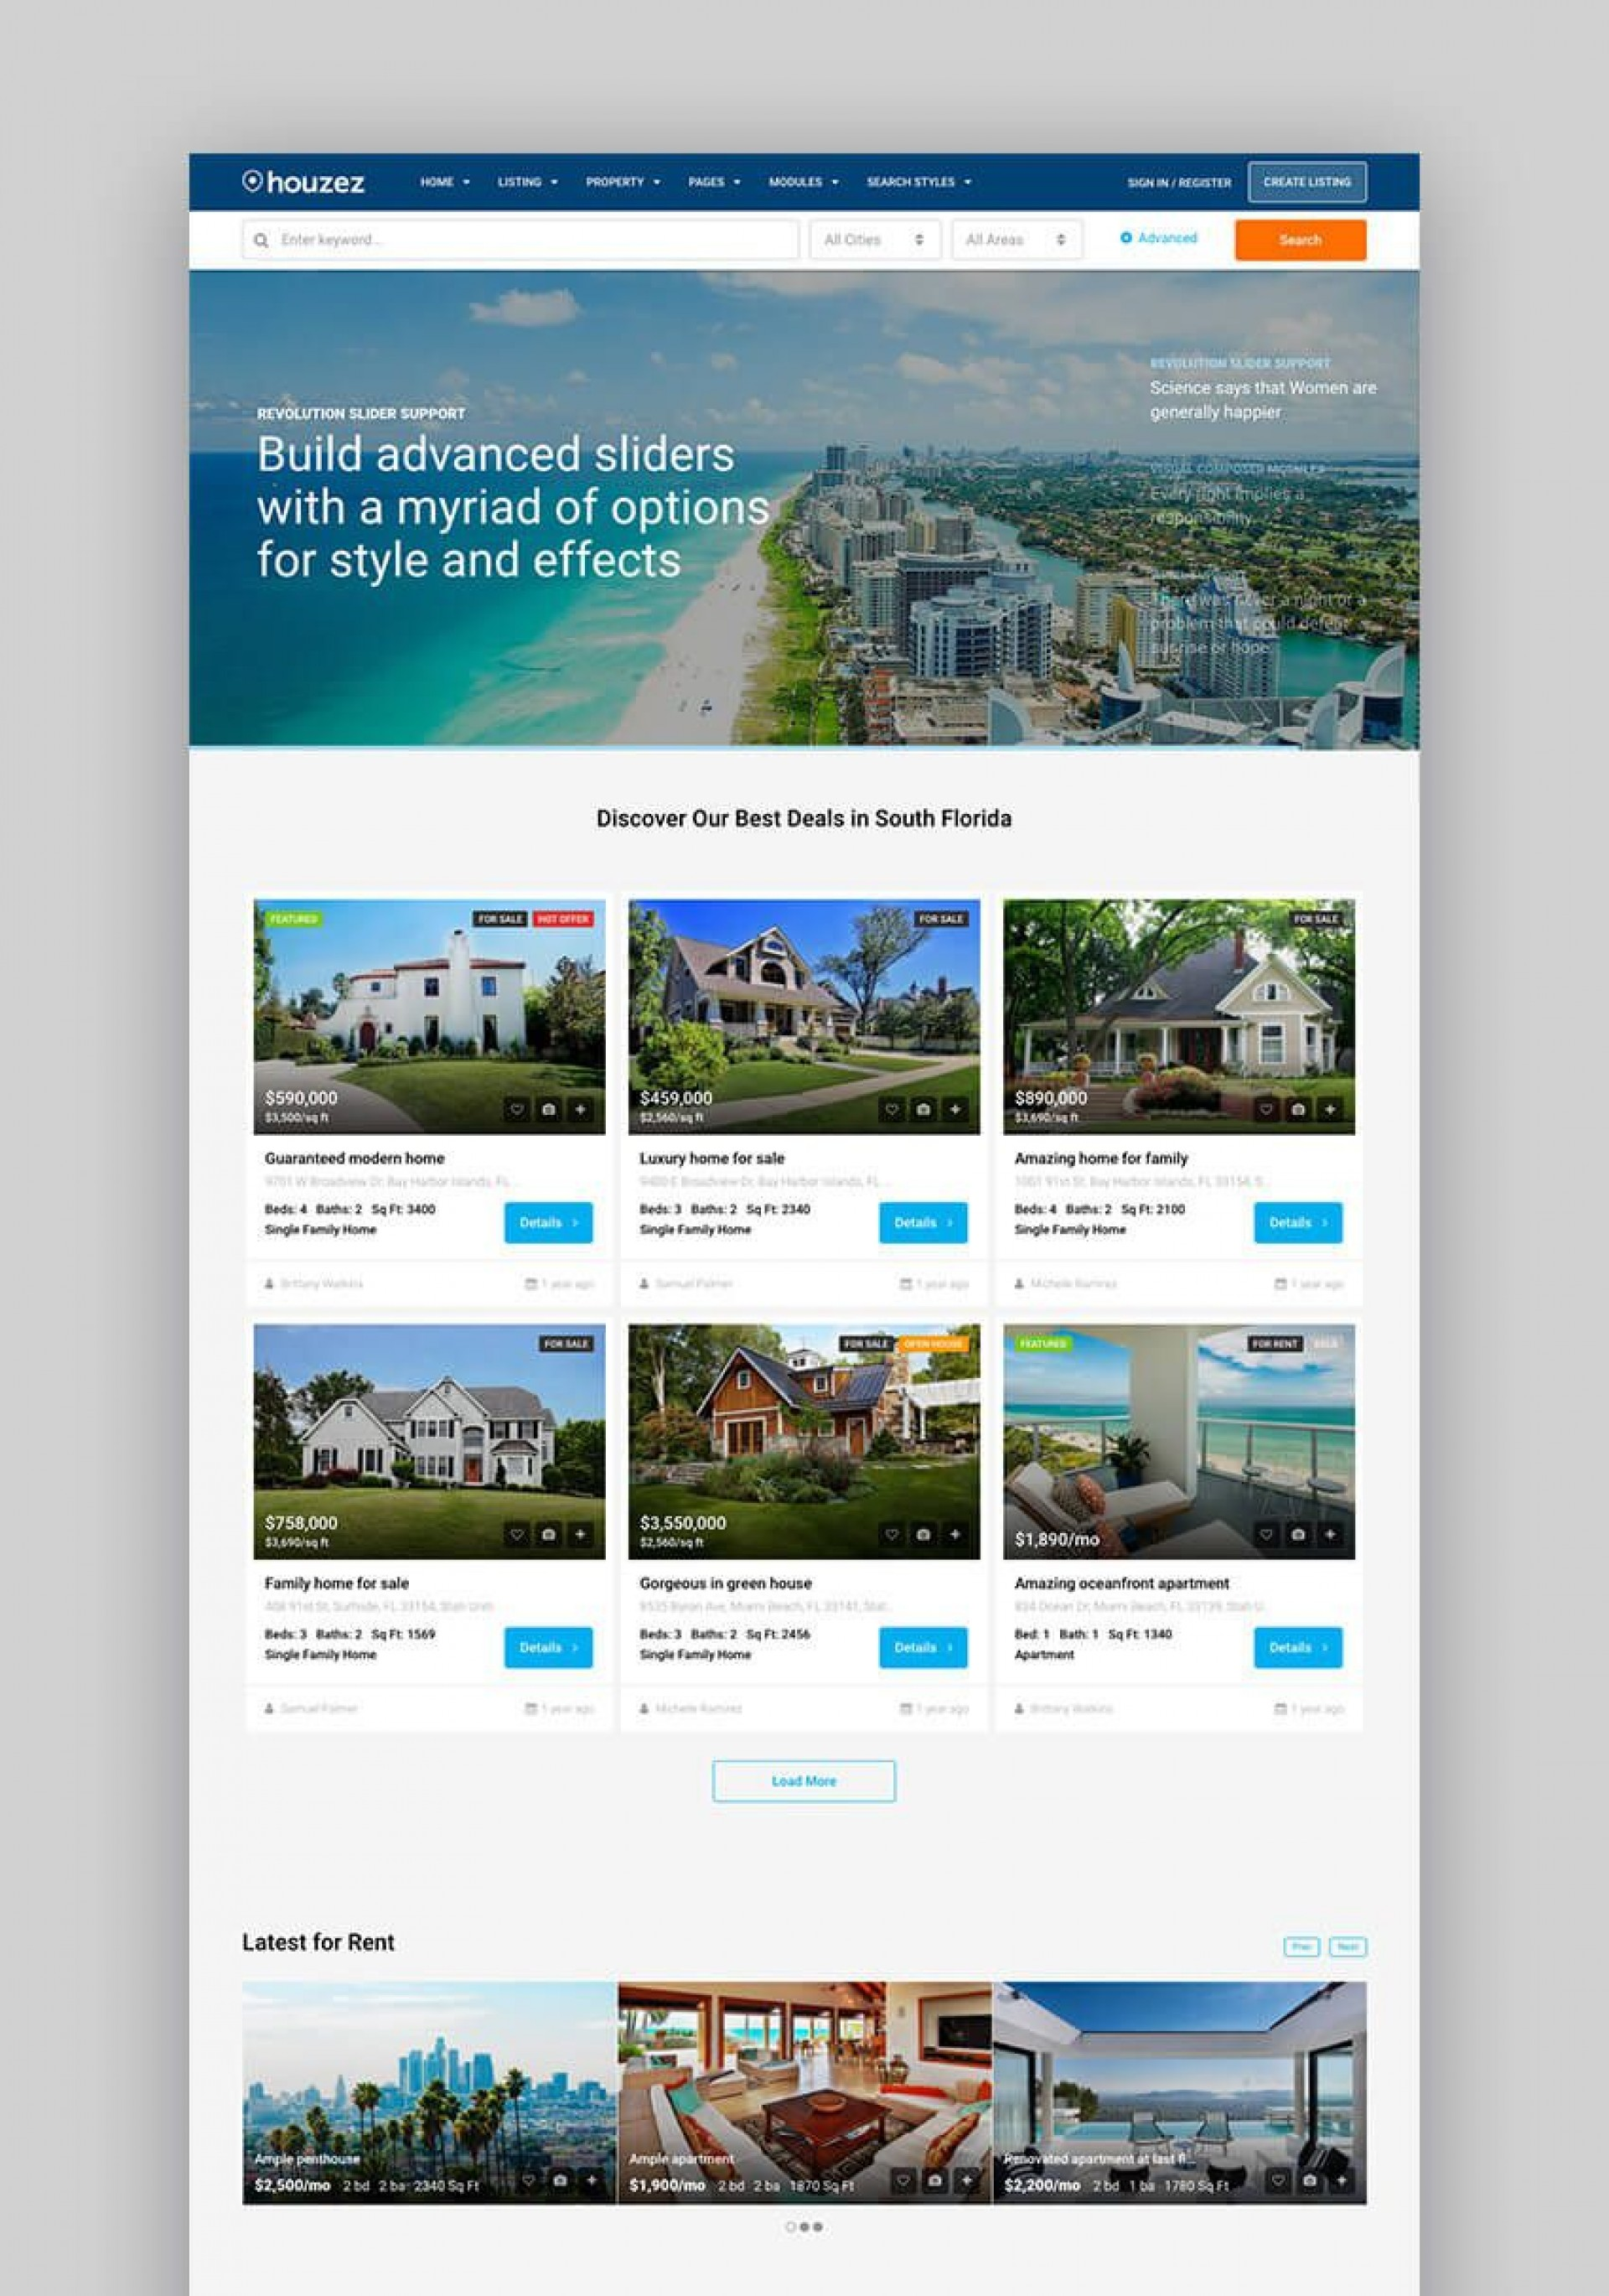 001 Fearsome Real Estate Template Wordpres Example  Homepres - Theme Free Download Realtyspace1920